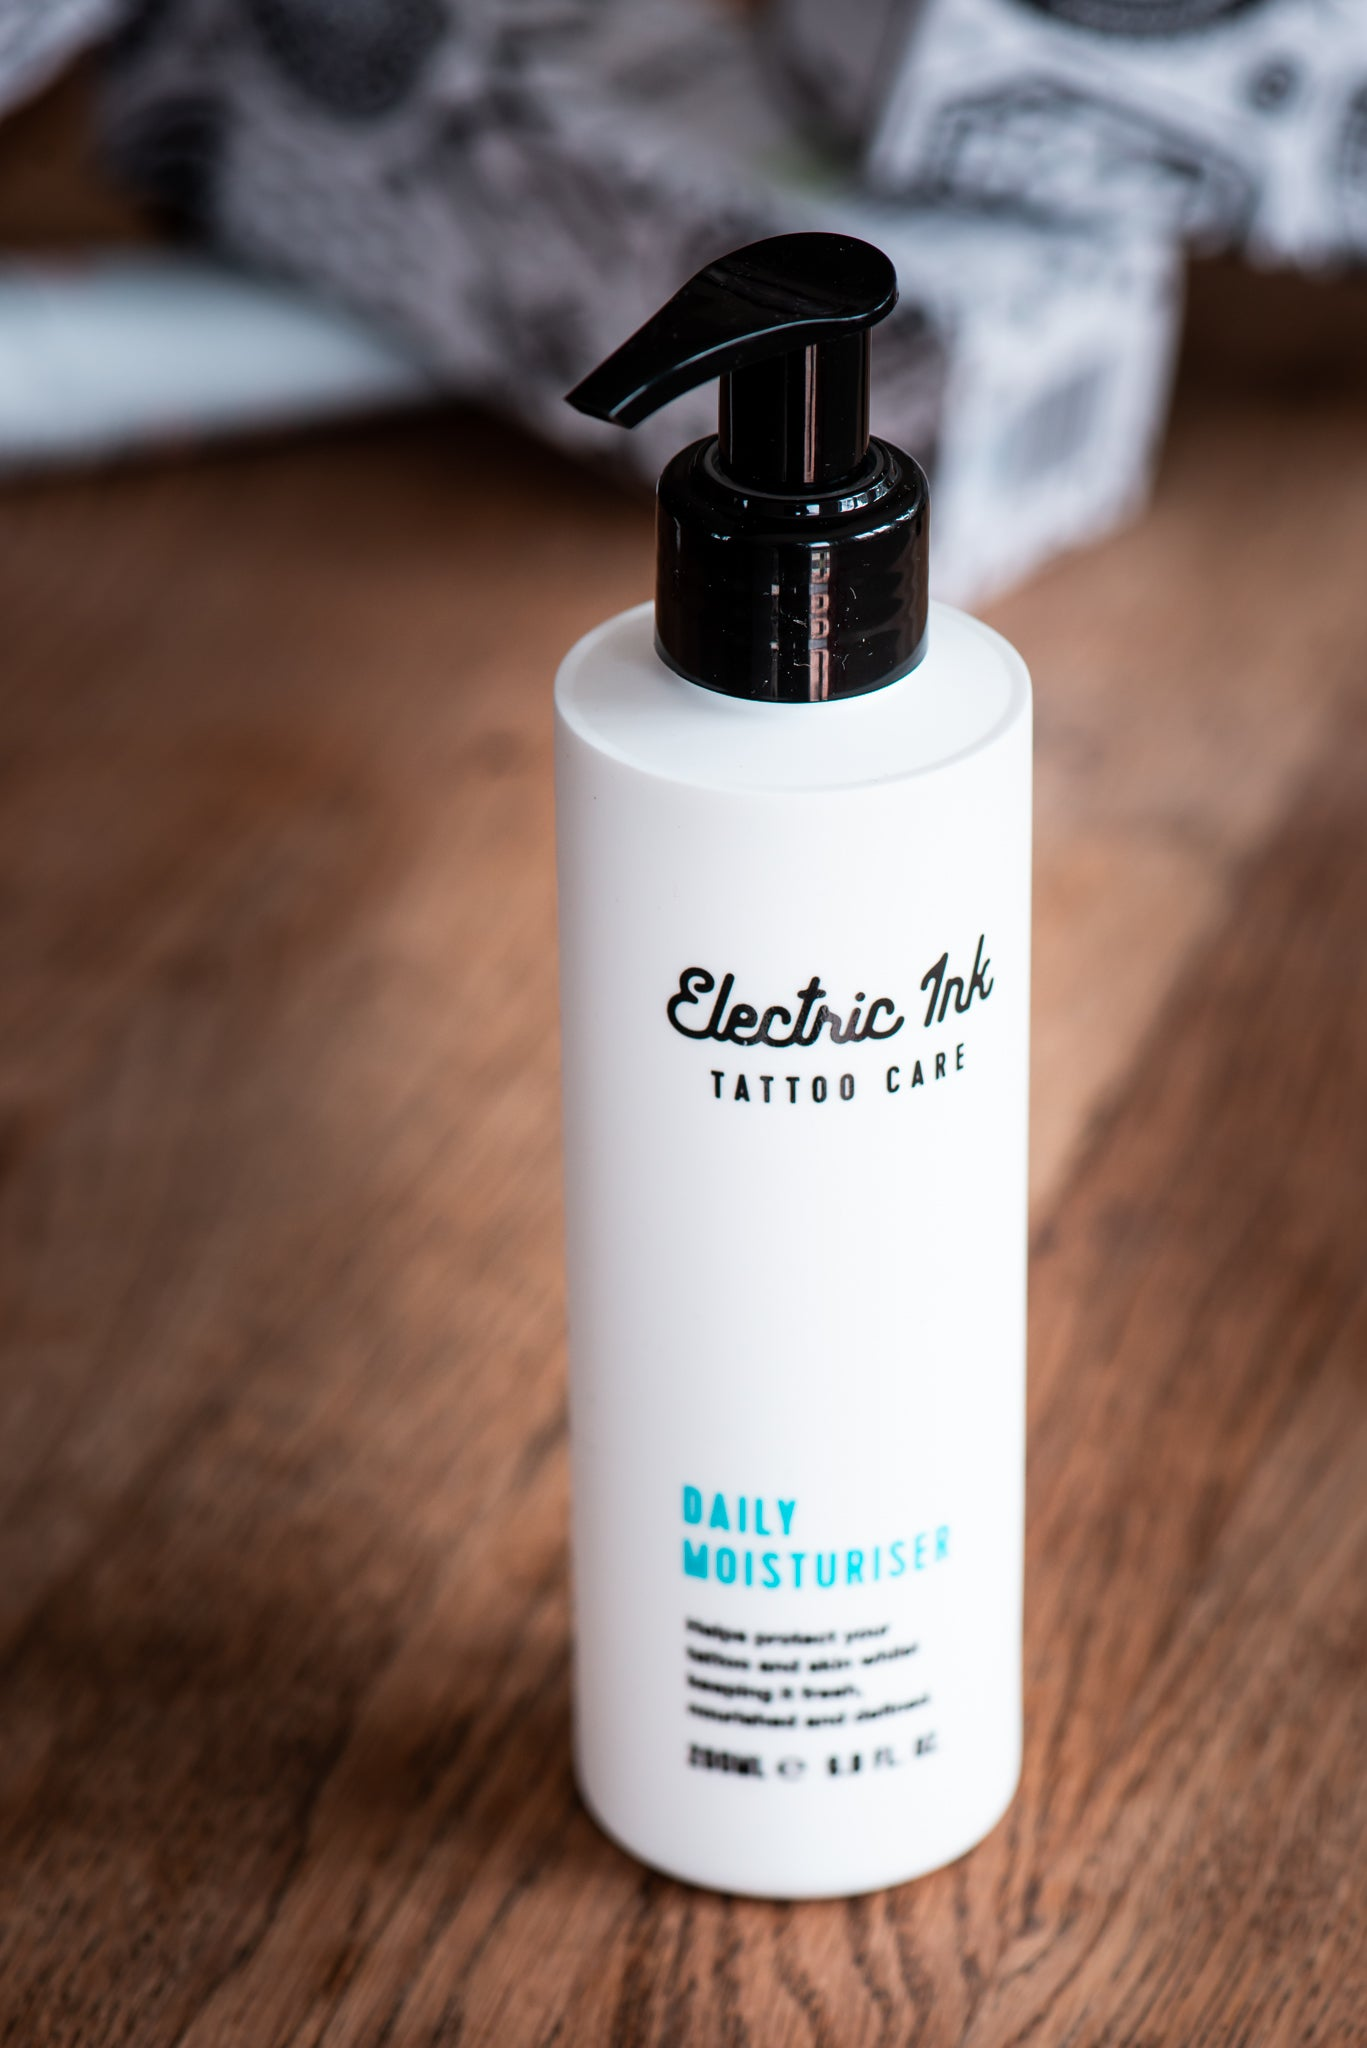 Electric Ink Tattoo Care - Daily Moisturiser